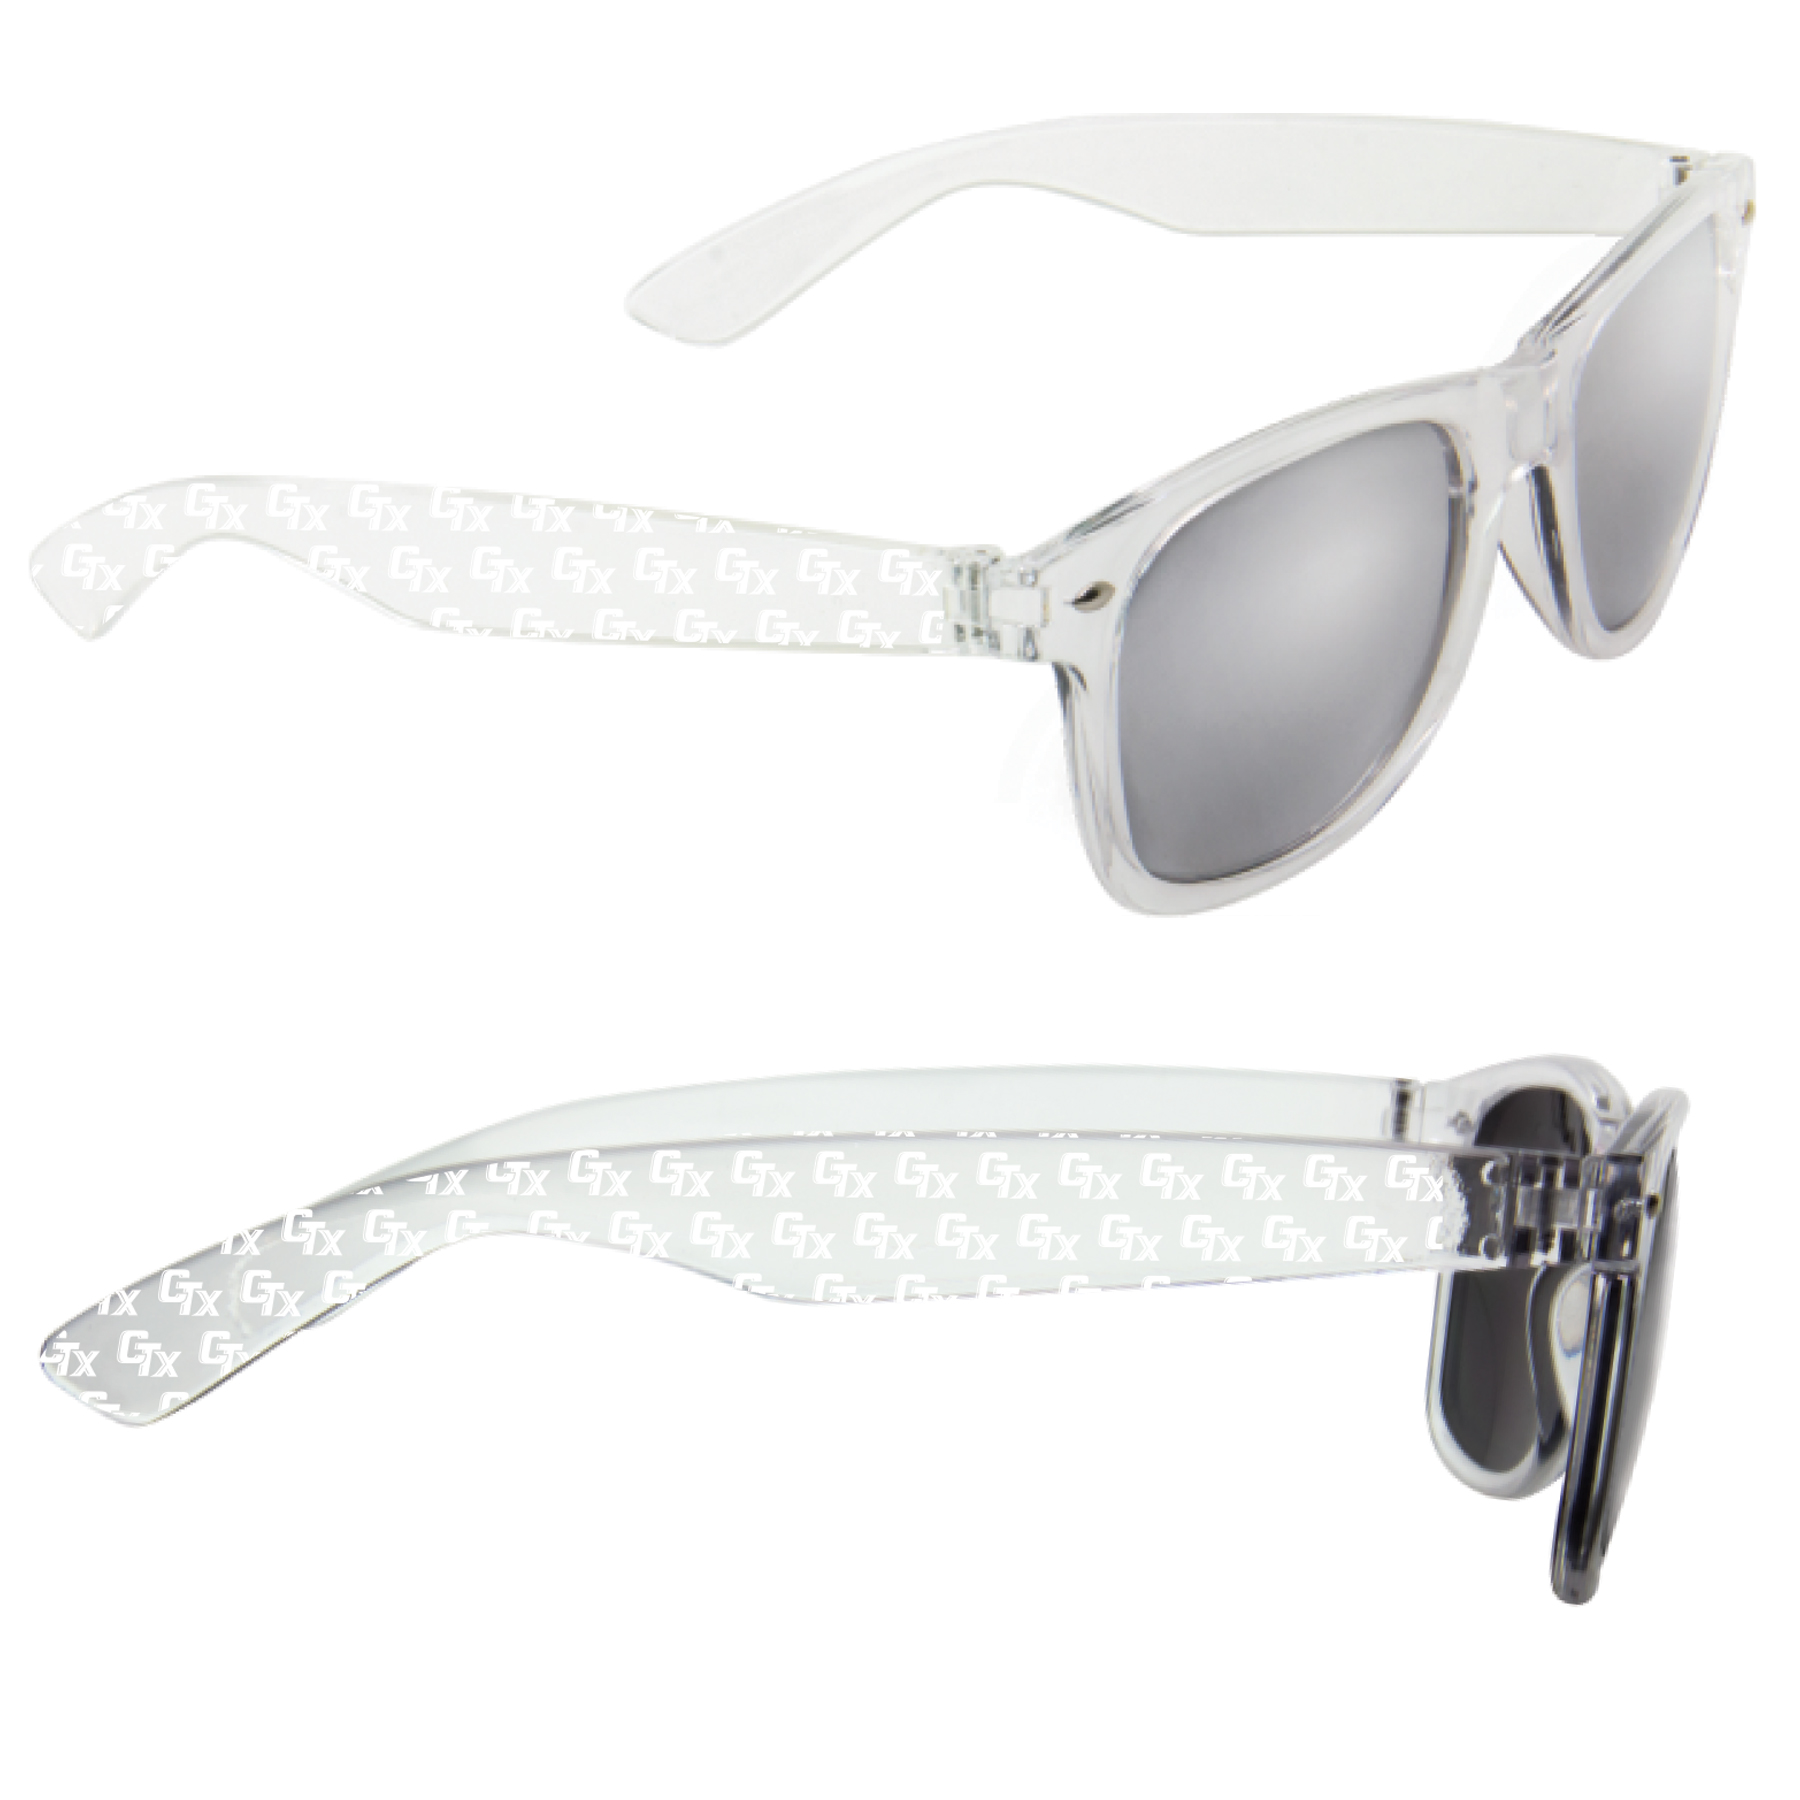 Detailed image of Clear CTX Sunglasses with Silver Mirror lenses